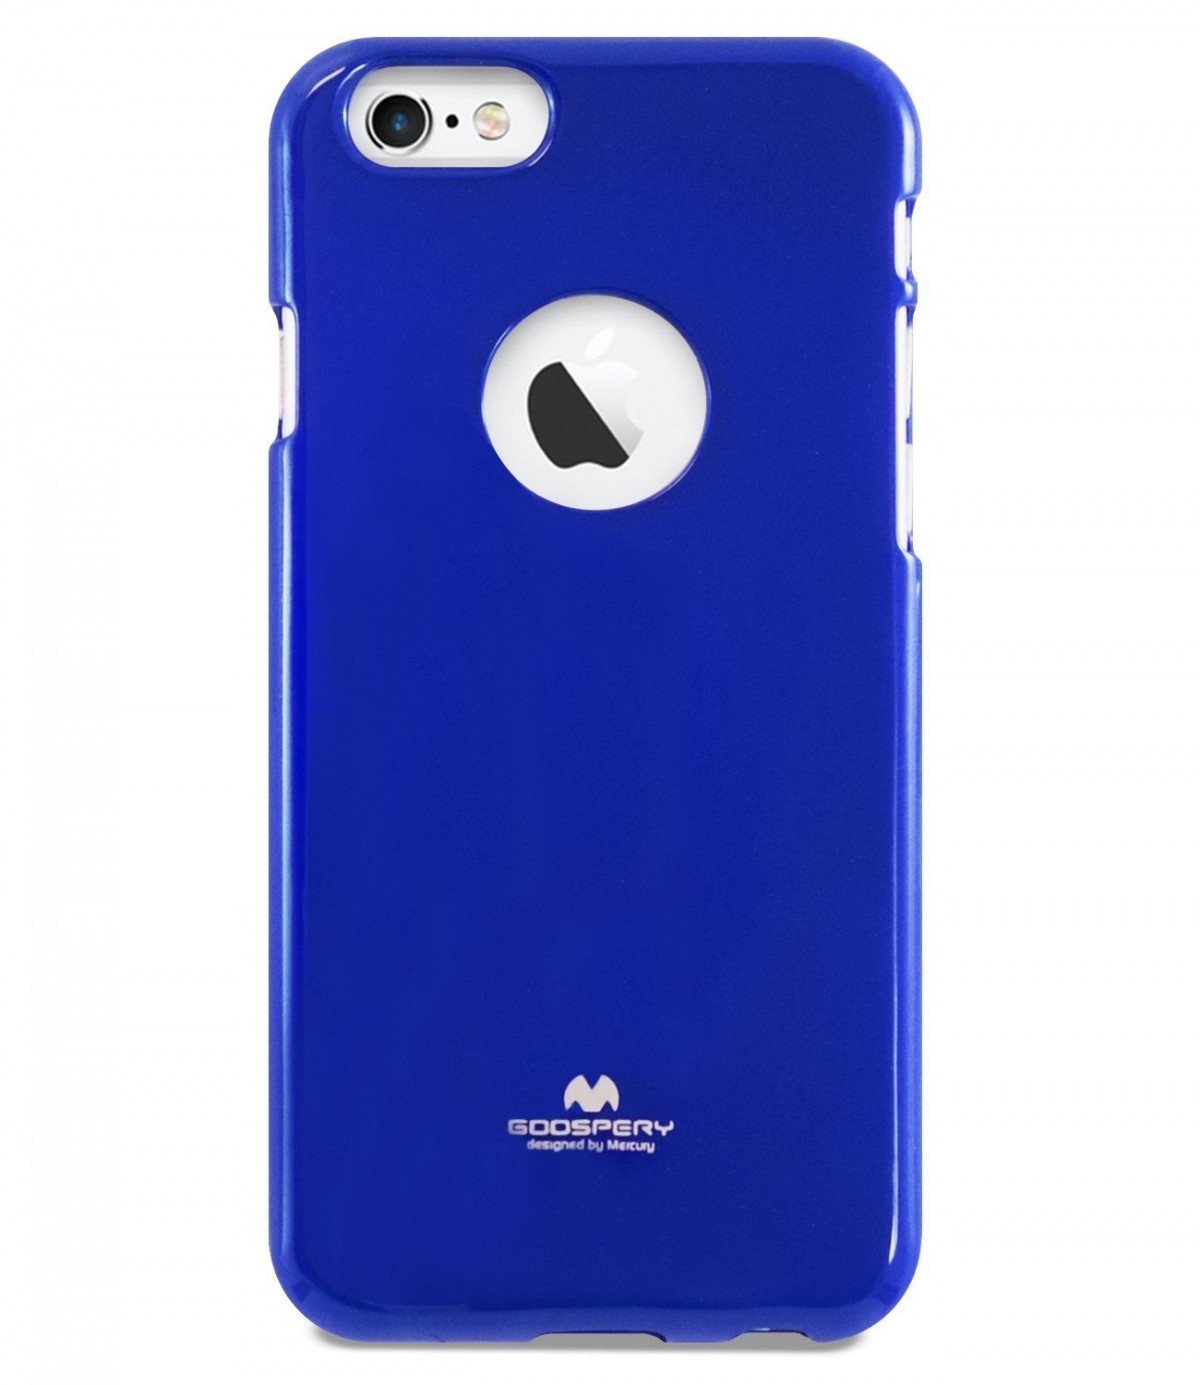 Pouzdro Goospery Mercury Jelly Case Apple iPhone 6s Plus / 6 Plus - Modré